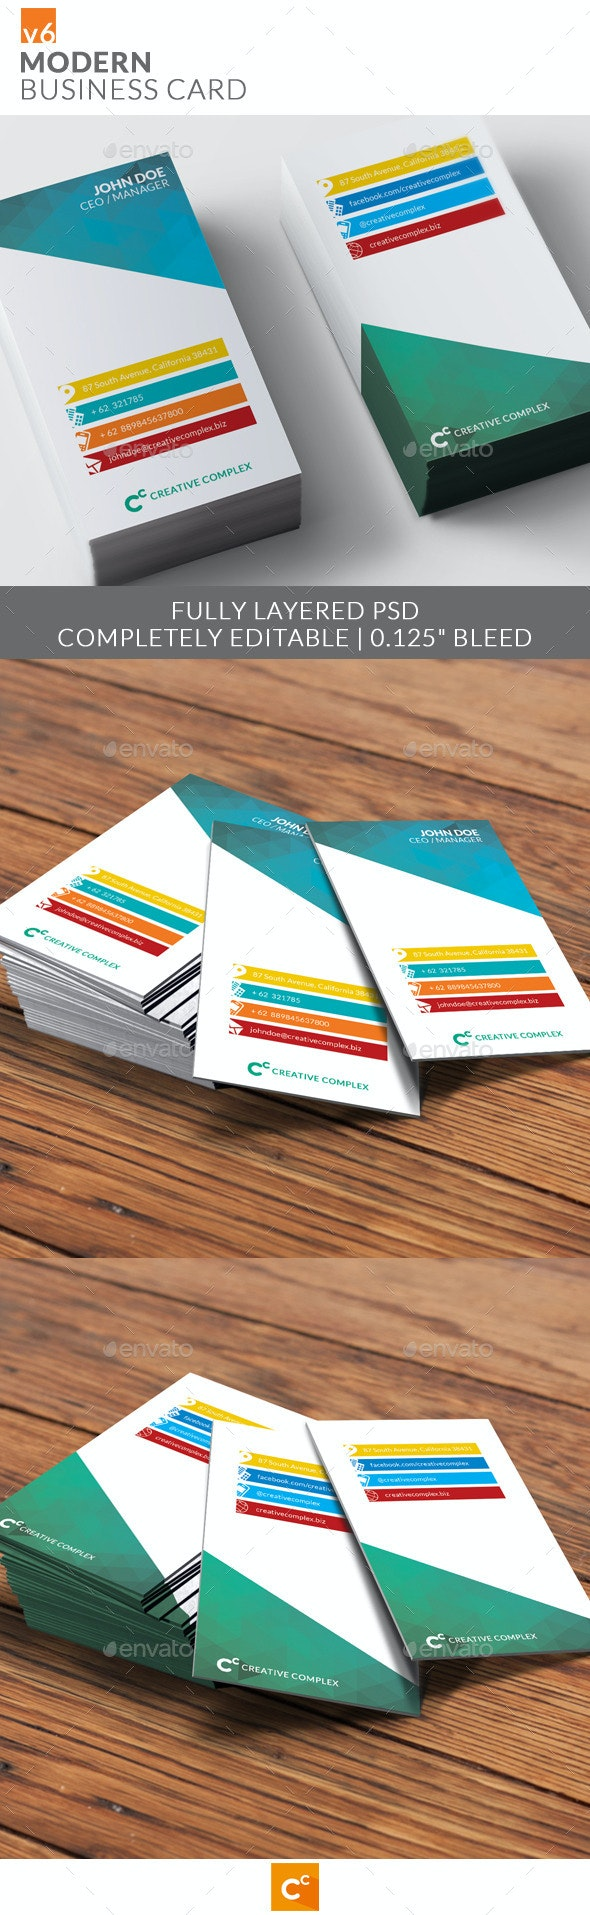 Modern Business Card v6 - Corporate Business Cards